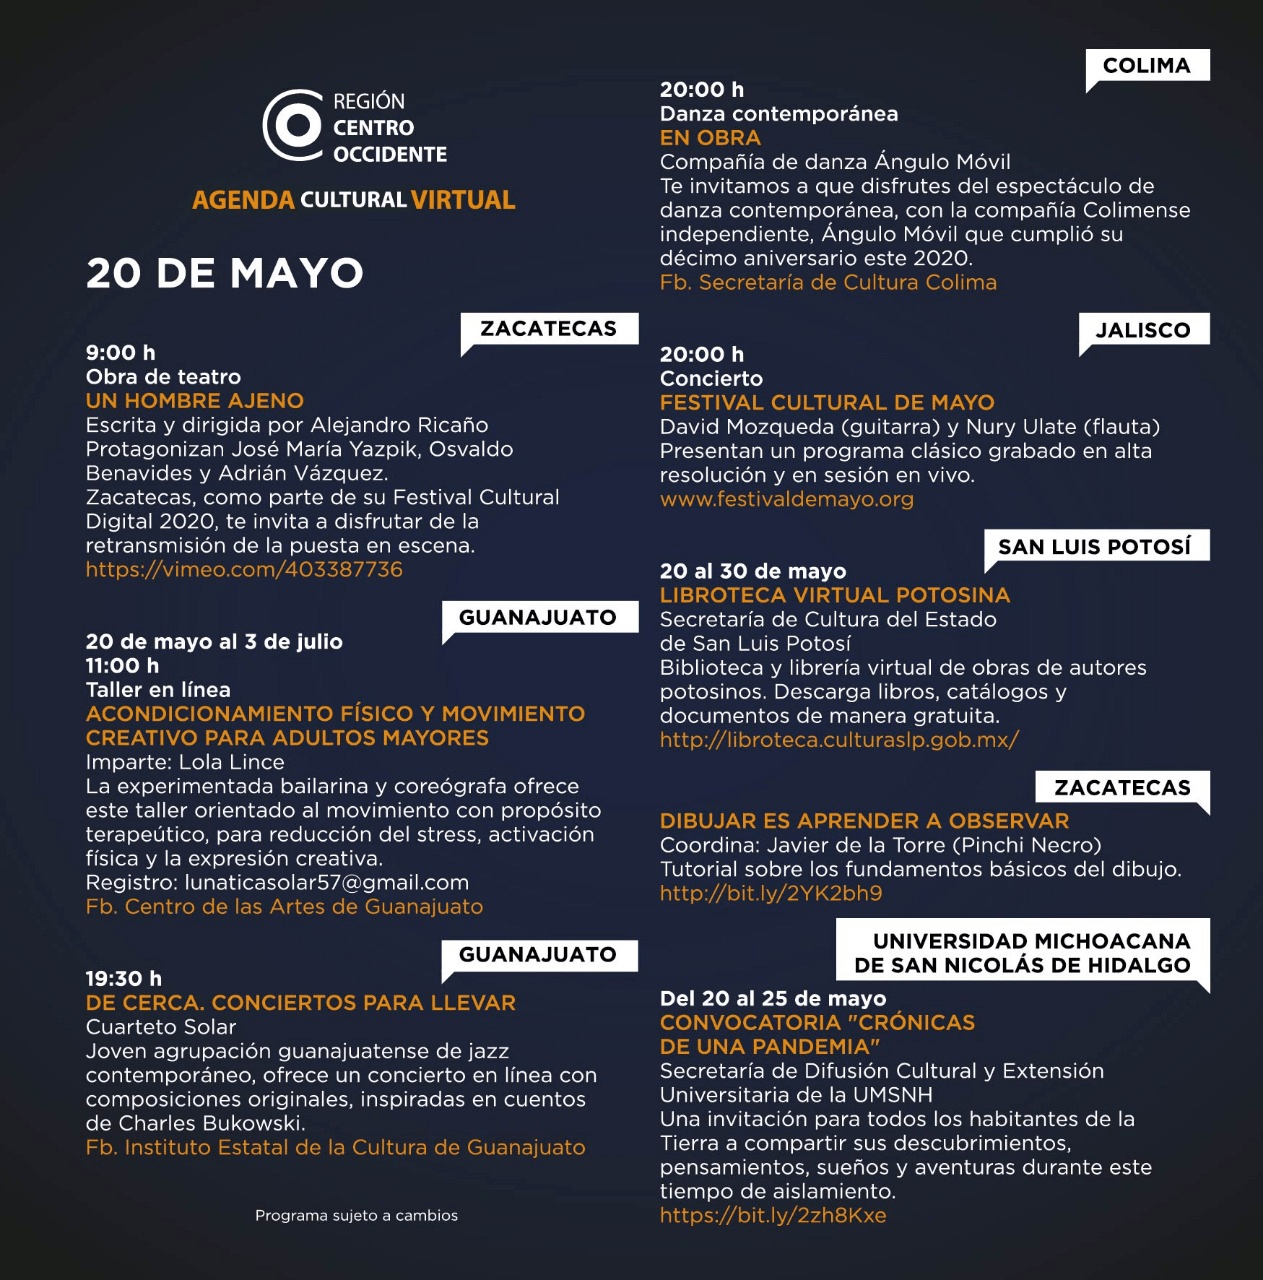 Agenda Centro Occidente 3